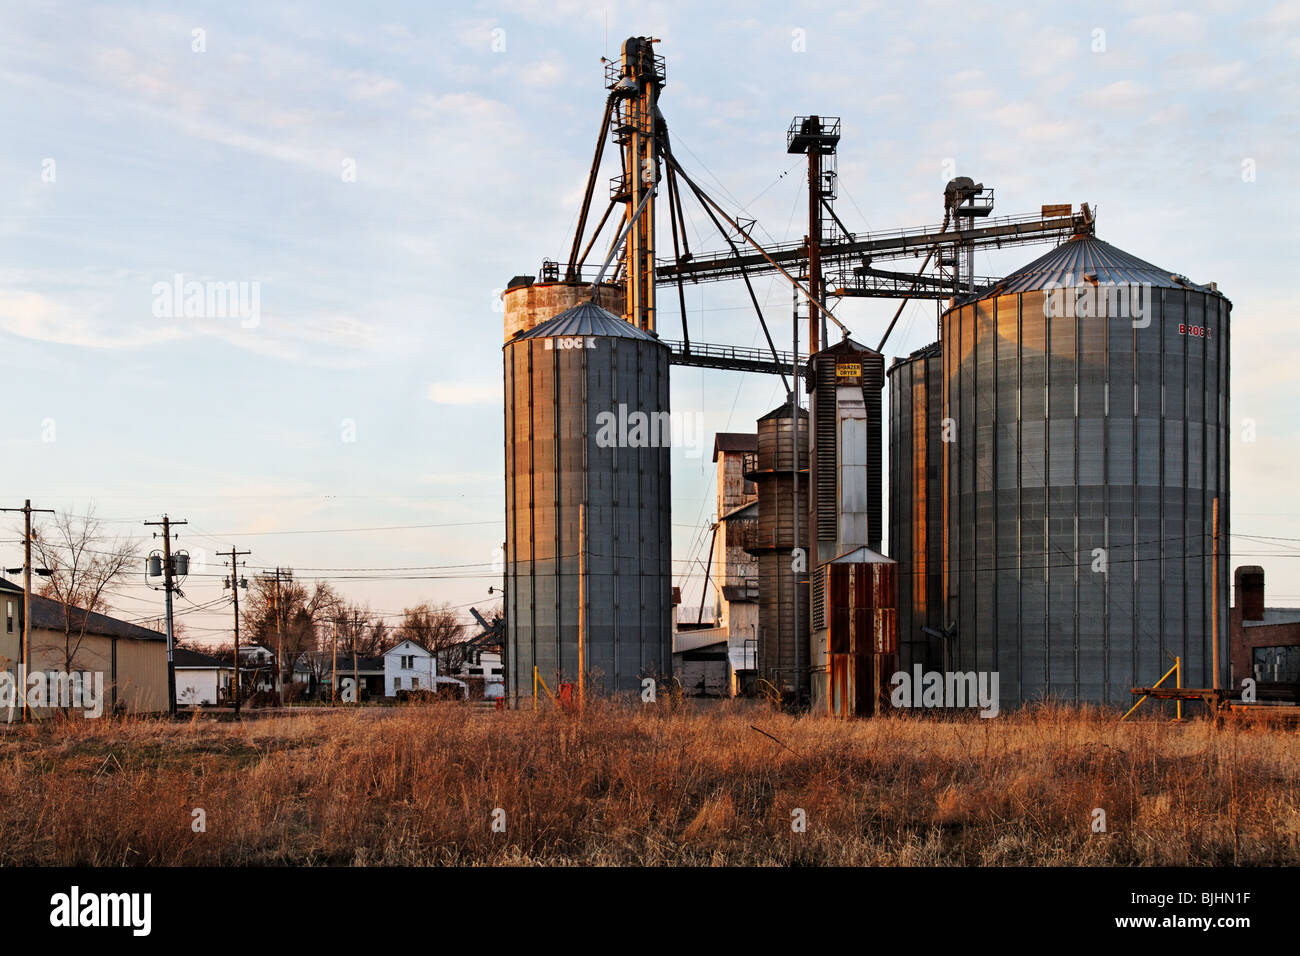 Ill Elevator Stock Photos & Ill Elevator Stock Images - Alamy